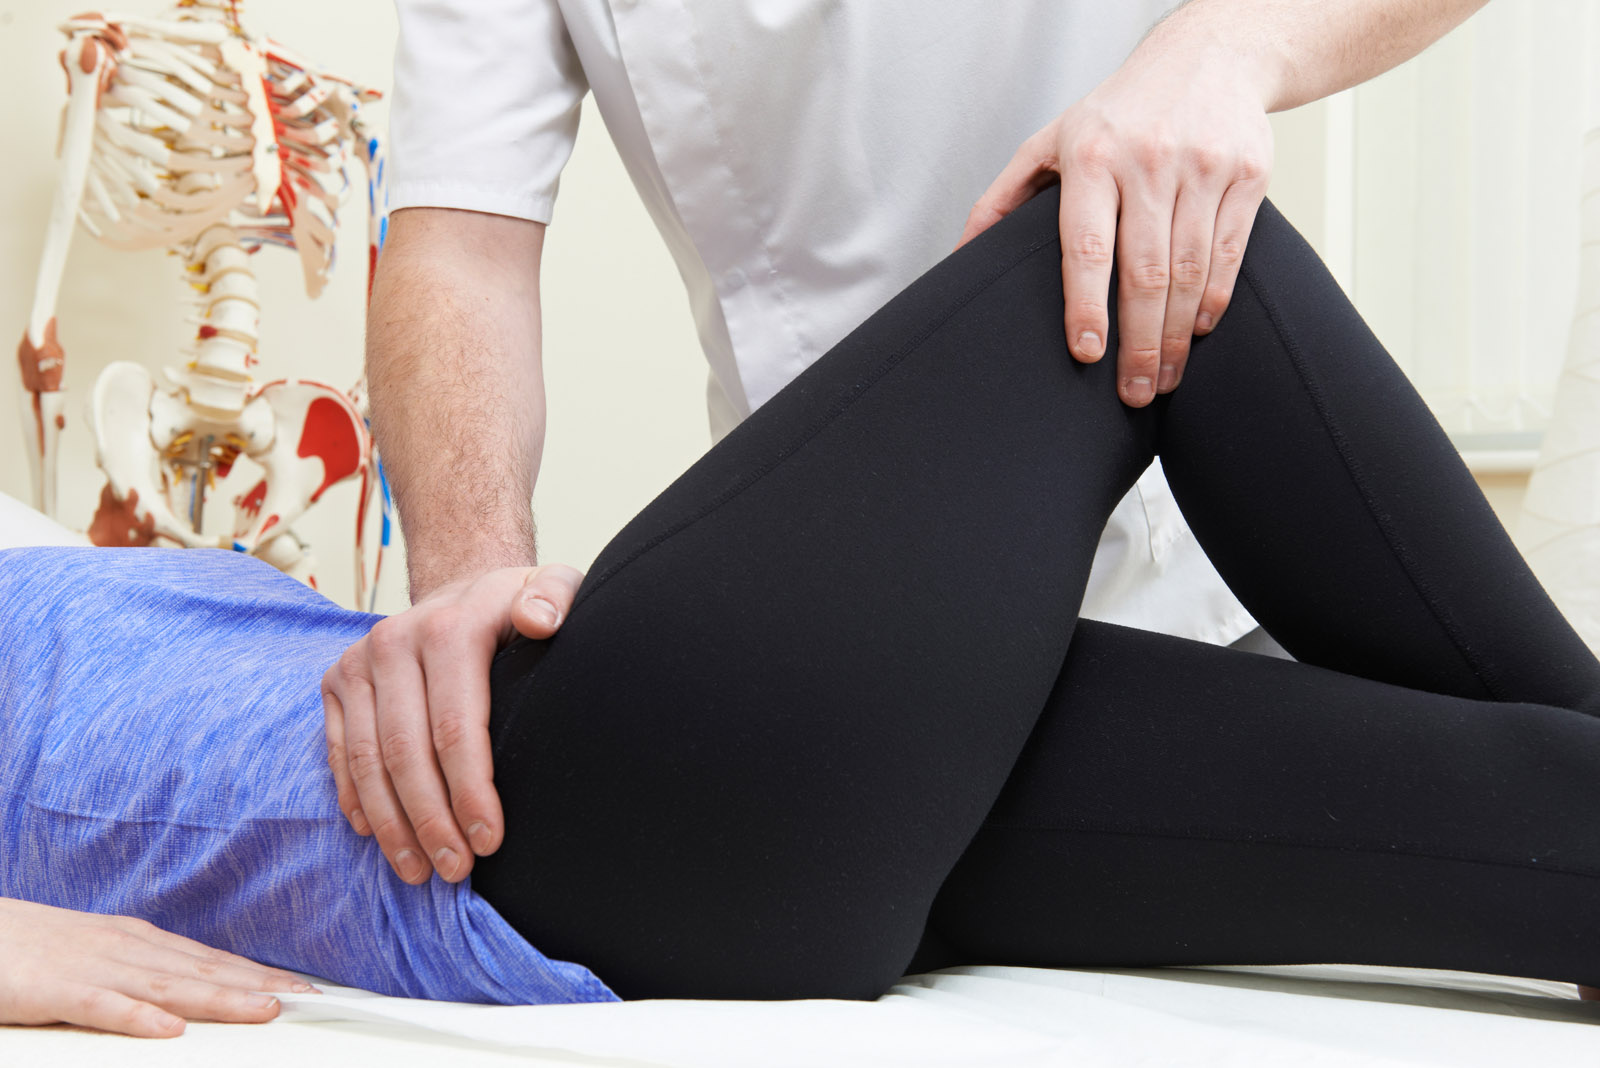 Hip and pelvis discomfort